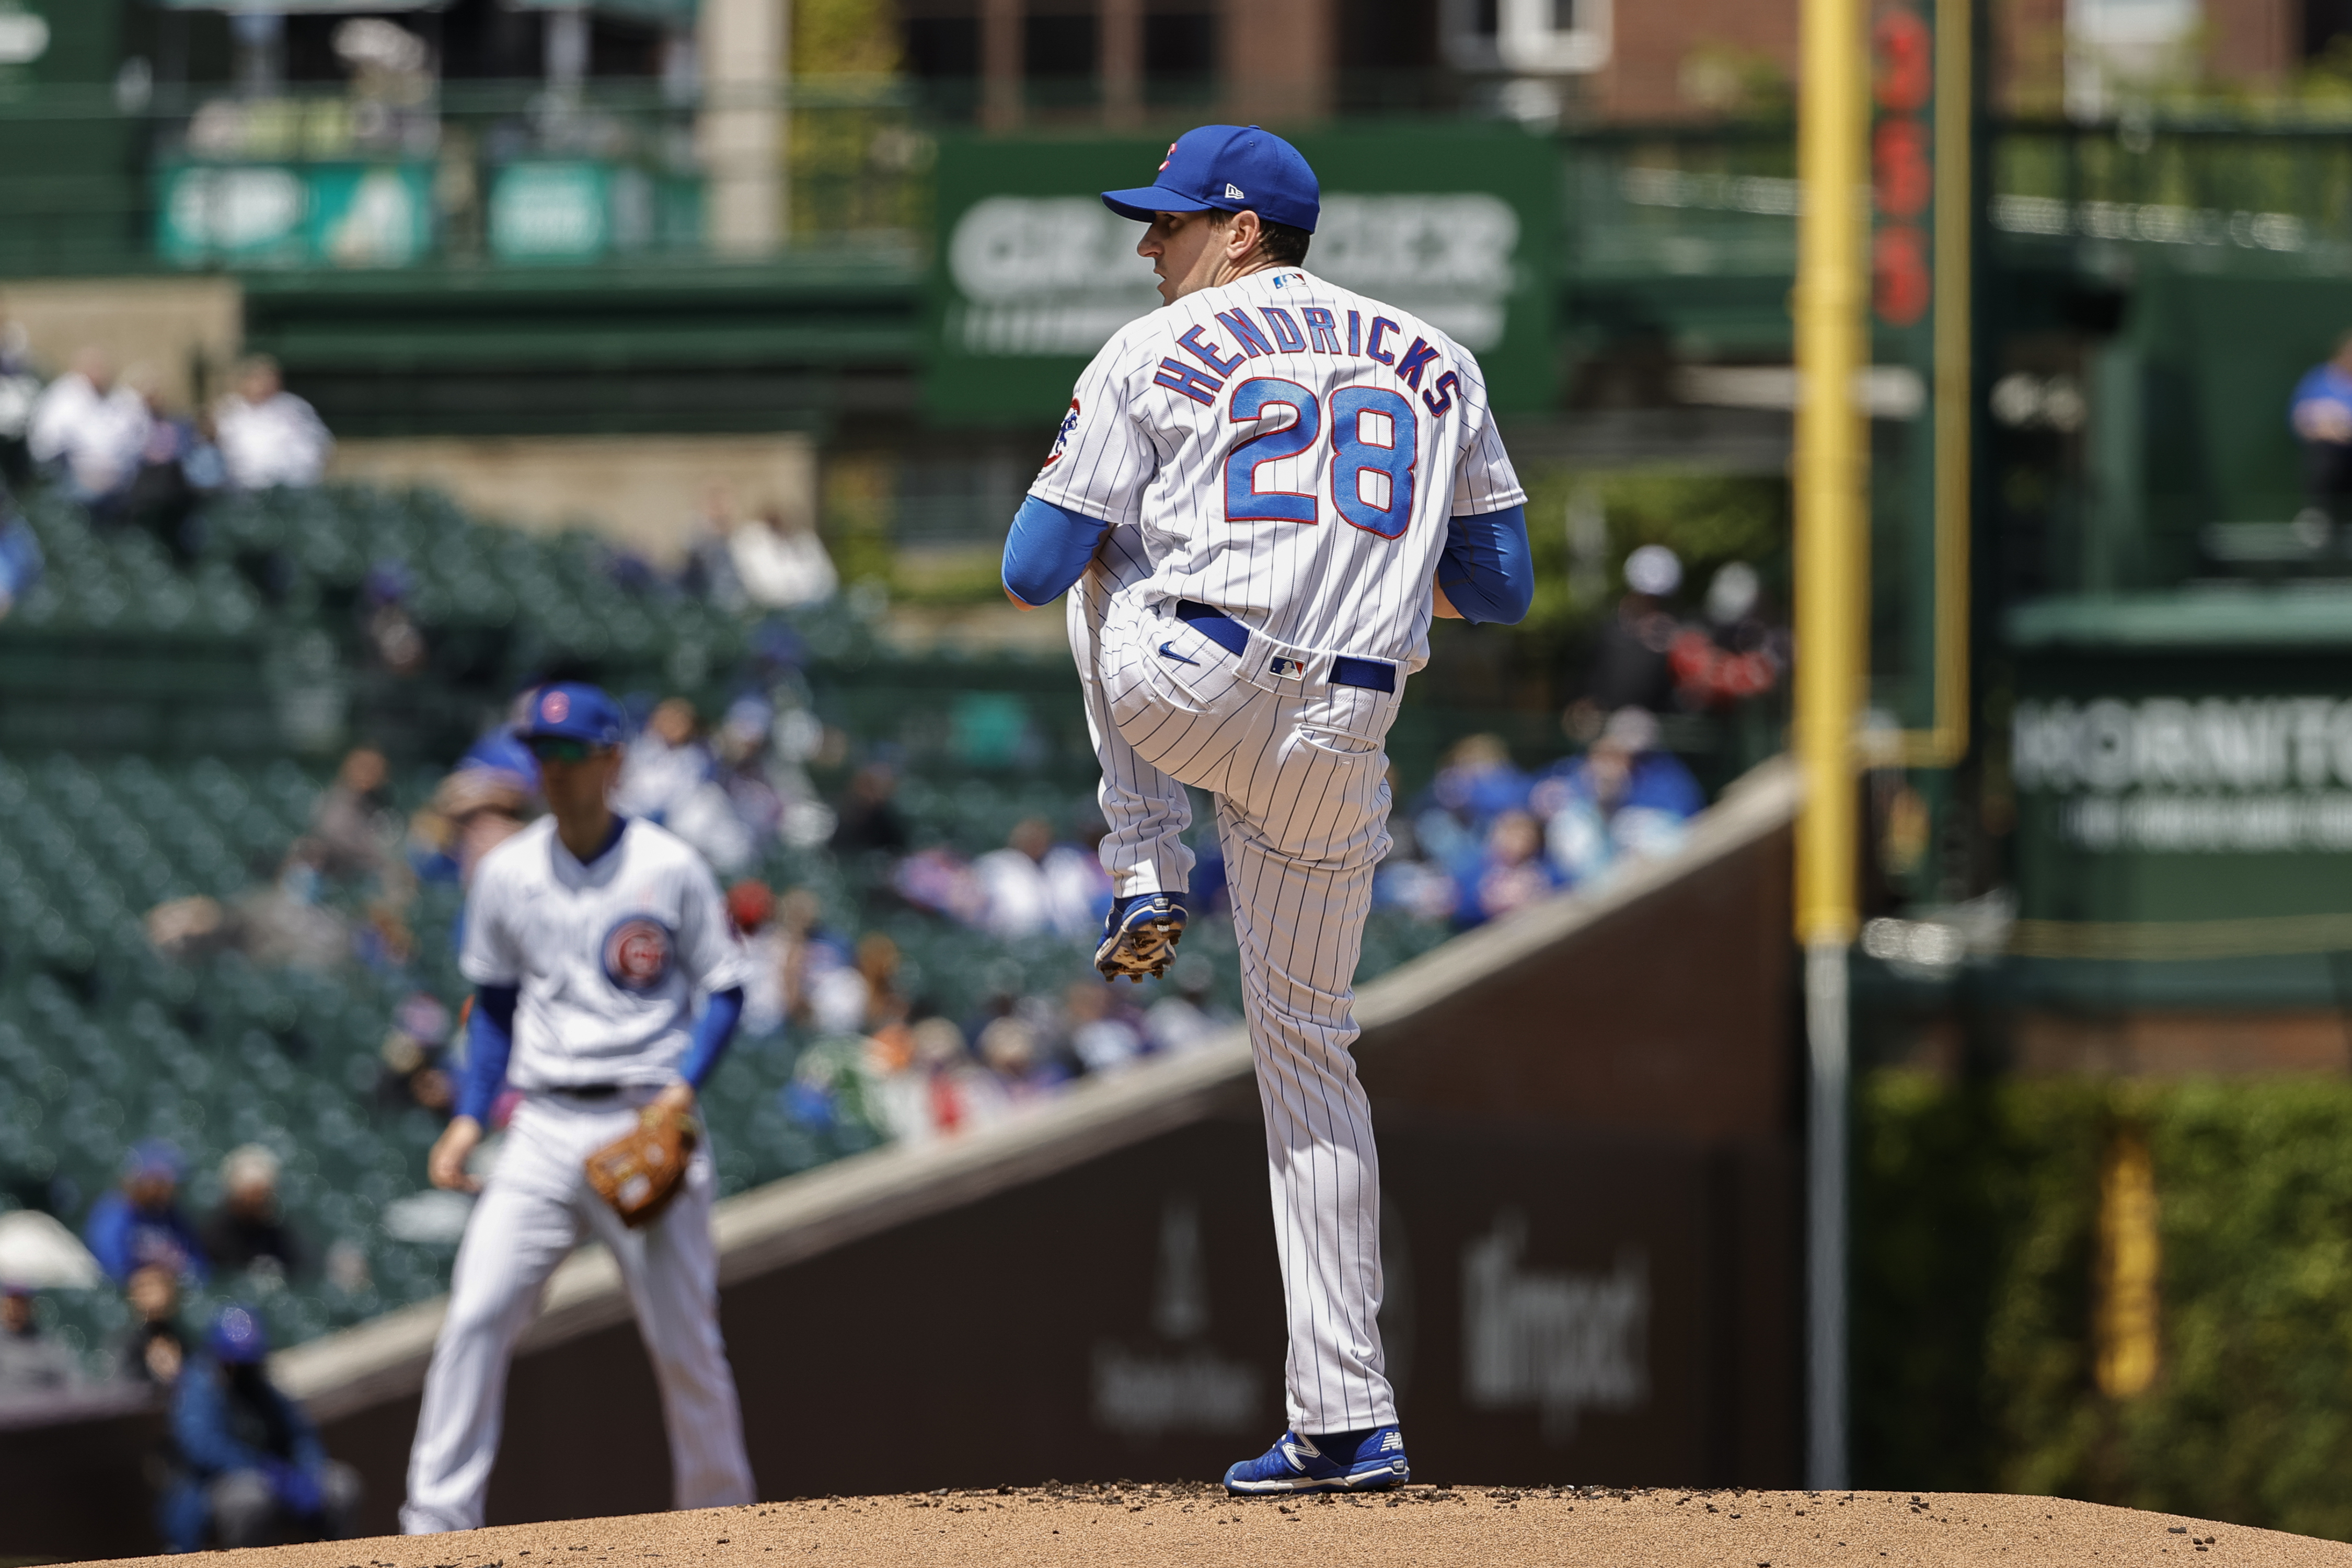 Cubs starting pitcher Kyle Hendricks delivers against the Pirates during the first inning of Sunday's game.